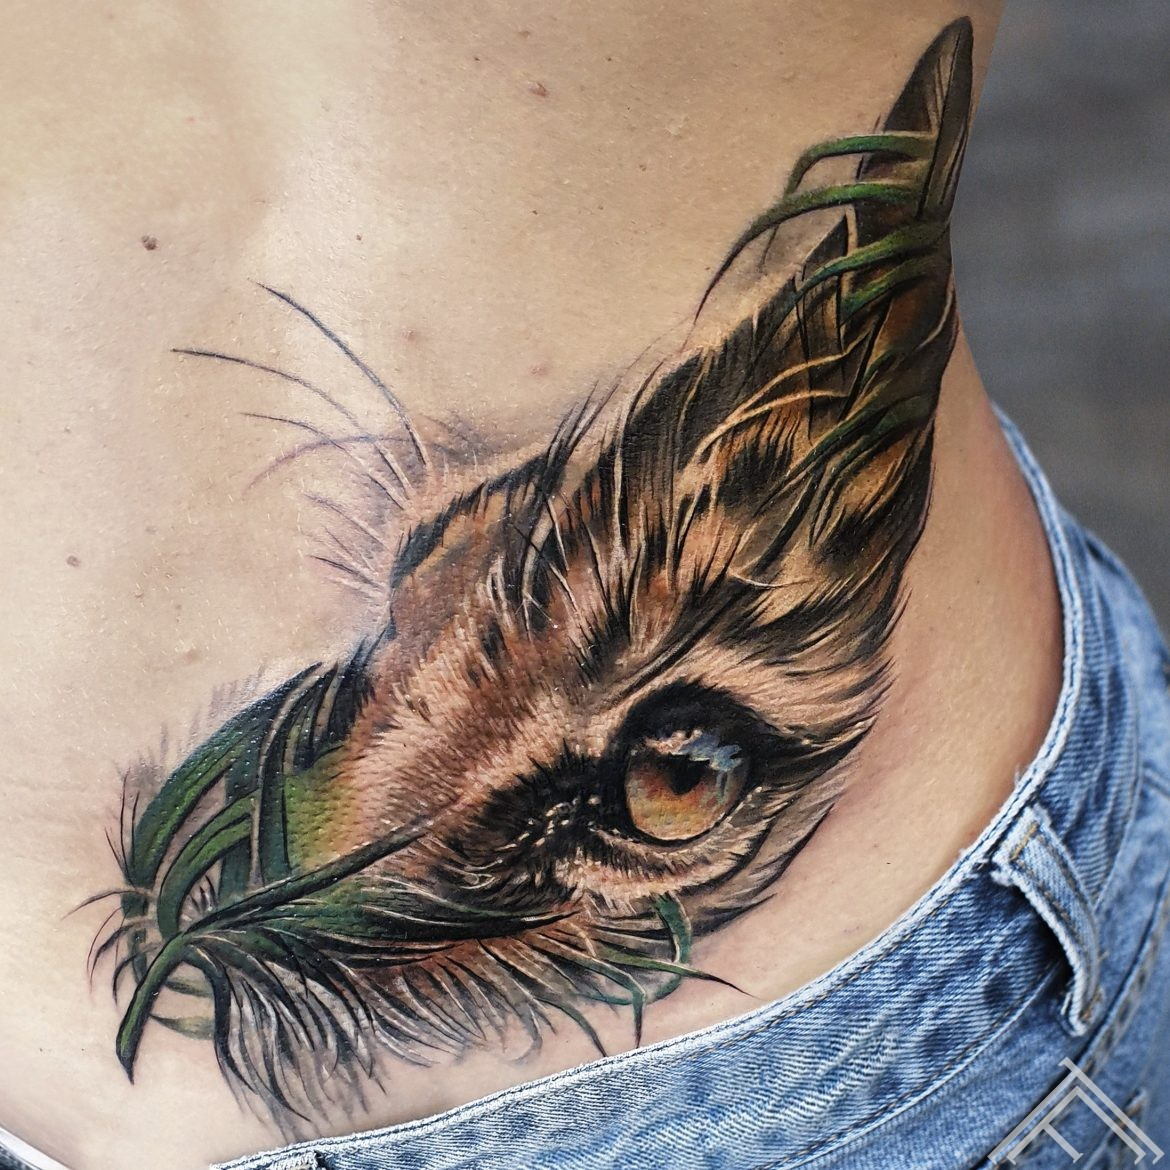 tiger-eye-feather-tigeris-spalva-acs-tetovejums-tattoo-art-riga-tatoofrequency-marispavlo-studijatetovesanas-maksla-tetovetaji